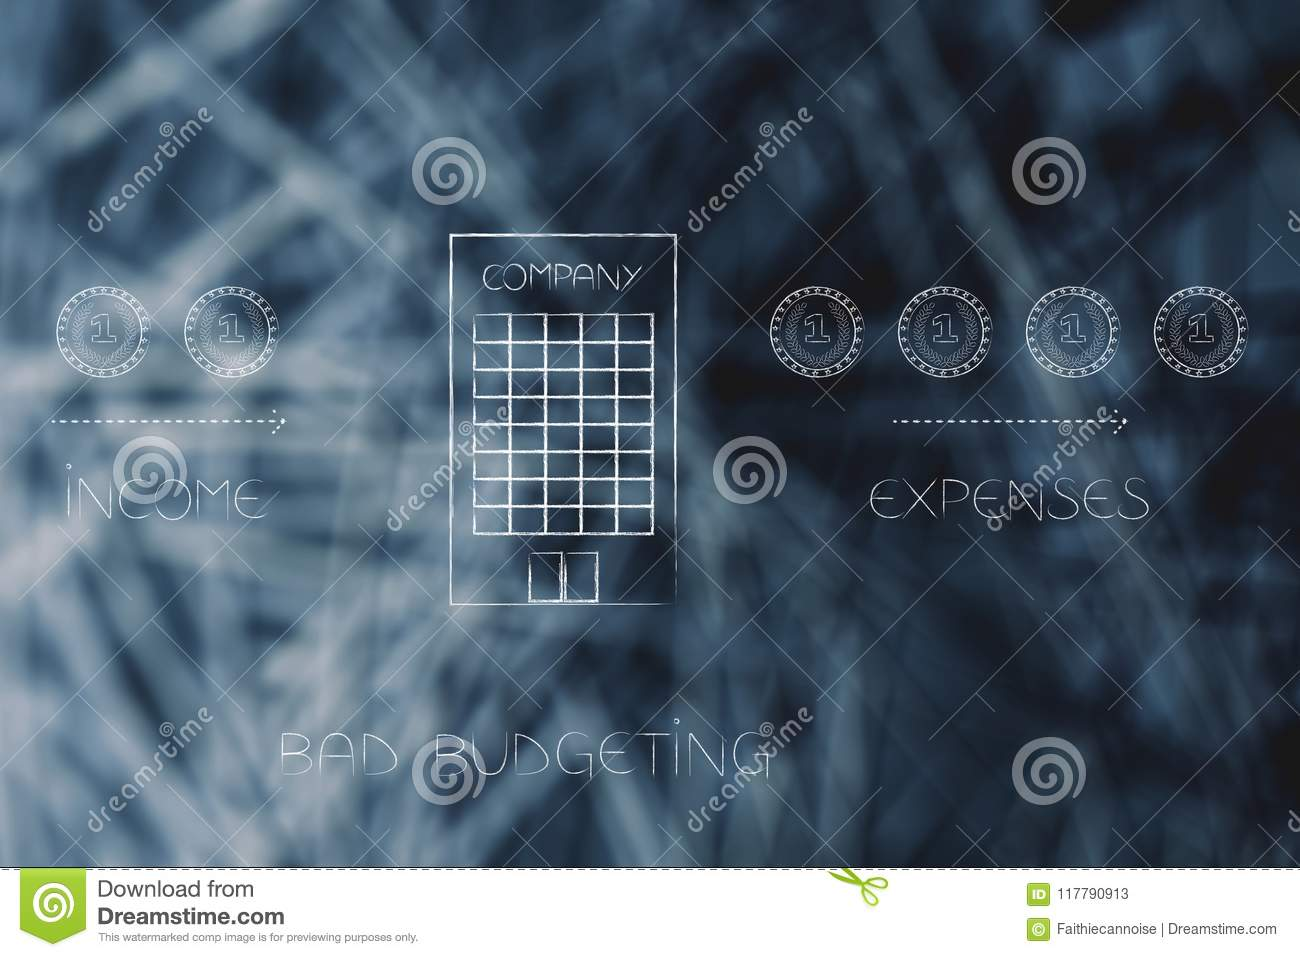 Less Income Going Into Company Building And More Expenses Bad Circuit Breaker Budgeting Financial Cashflow Conceptual Illustration Out